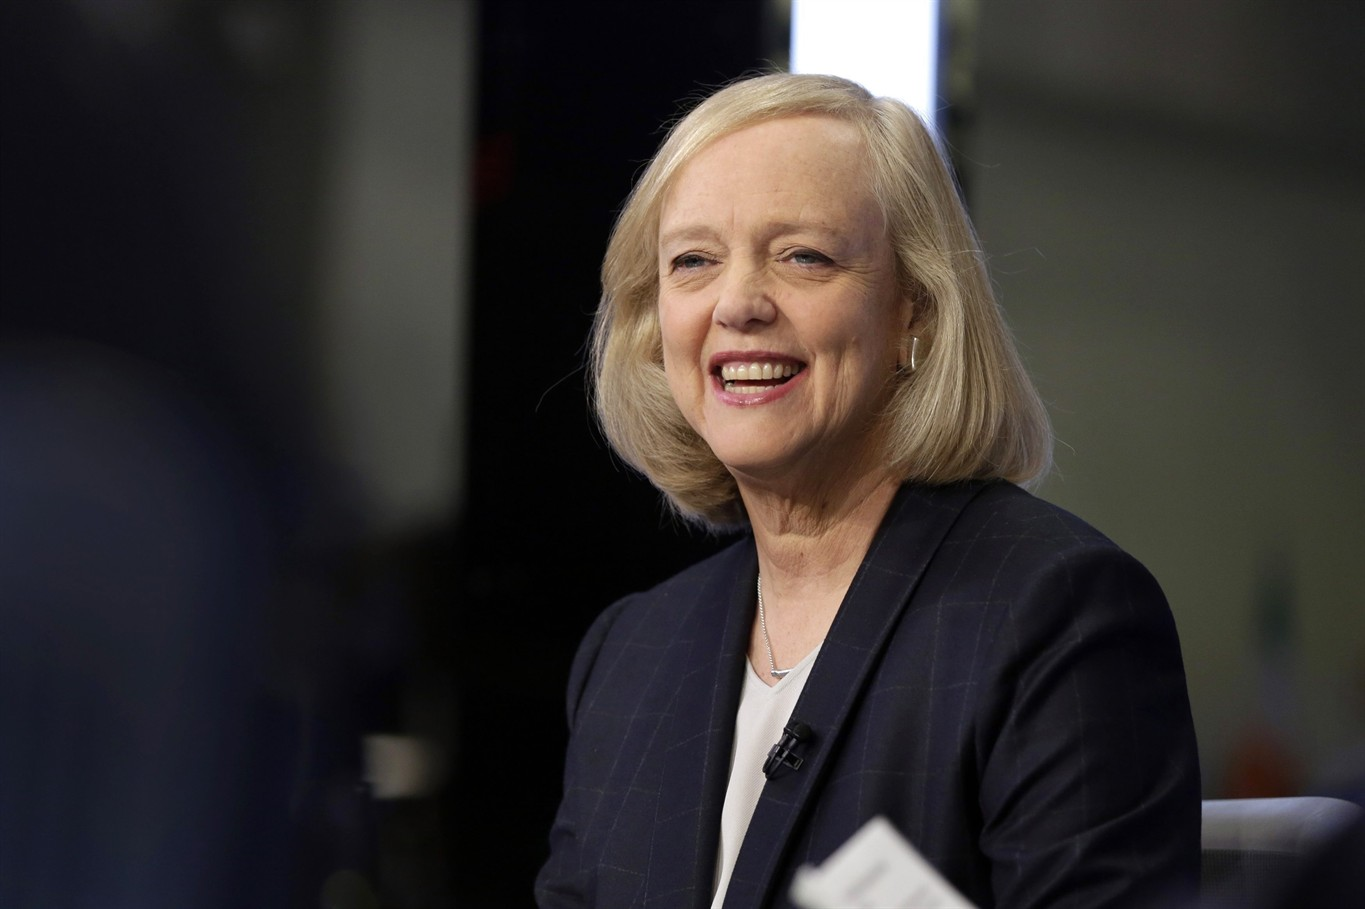 Meg Whitman to Lead Mobile-Video Startup NewTV